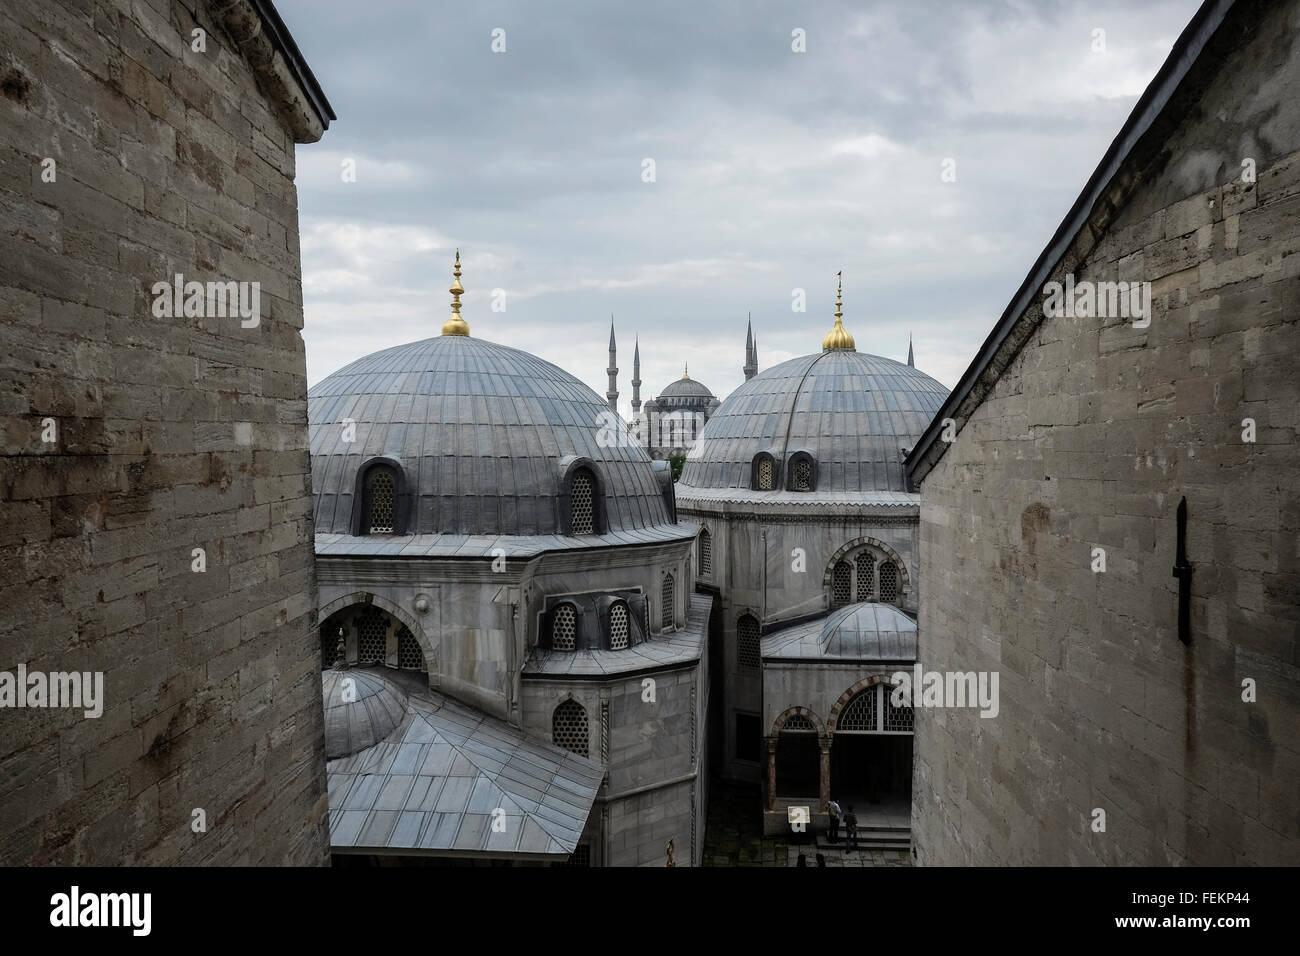 The Blue Mosque (Sultan Ahmet Camii), as seen from the Hagia Sophia, Istanbul, Turkey on May 3, 2015. - Stock Image